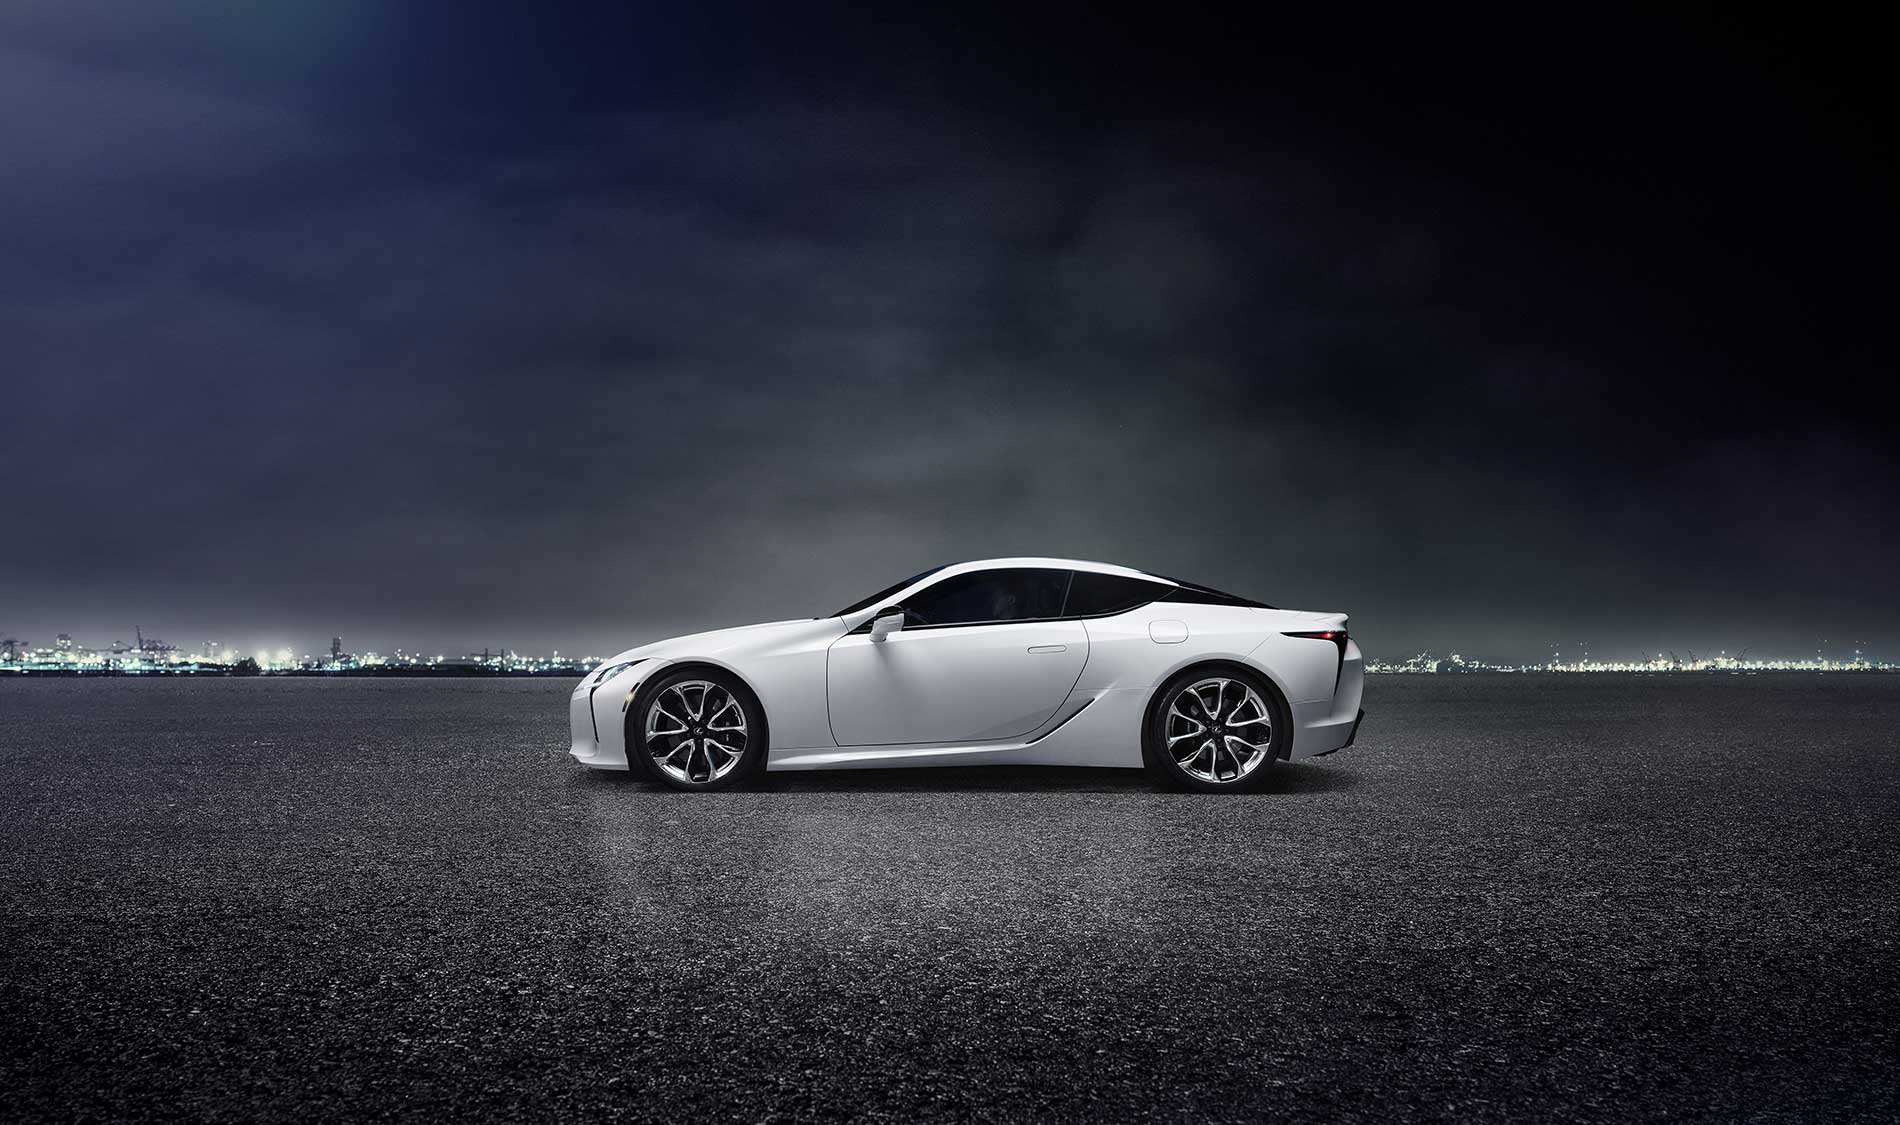 Client: Lexus Lc Photographer: Olaf Hauschultz  Advertising Agency: Team One Usa  Location: Long Beach, Ca